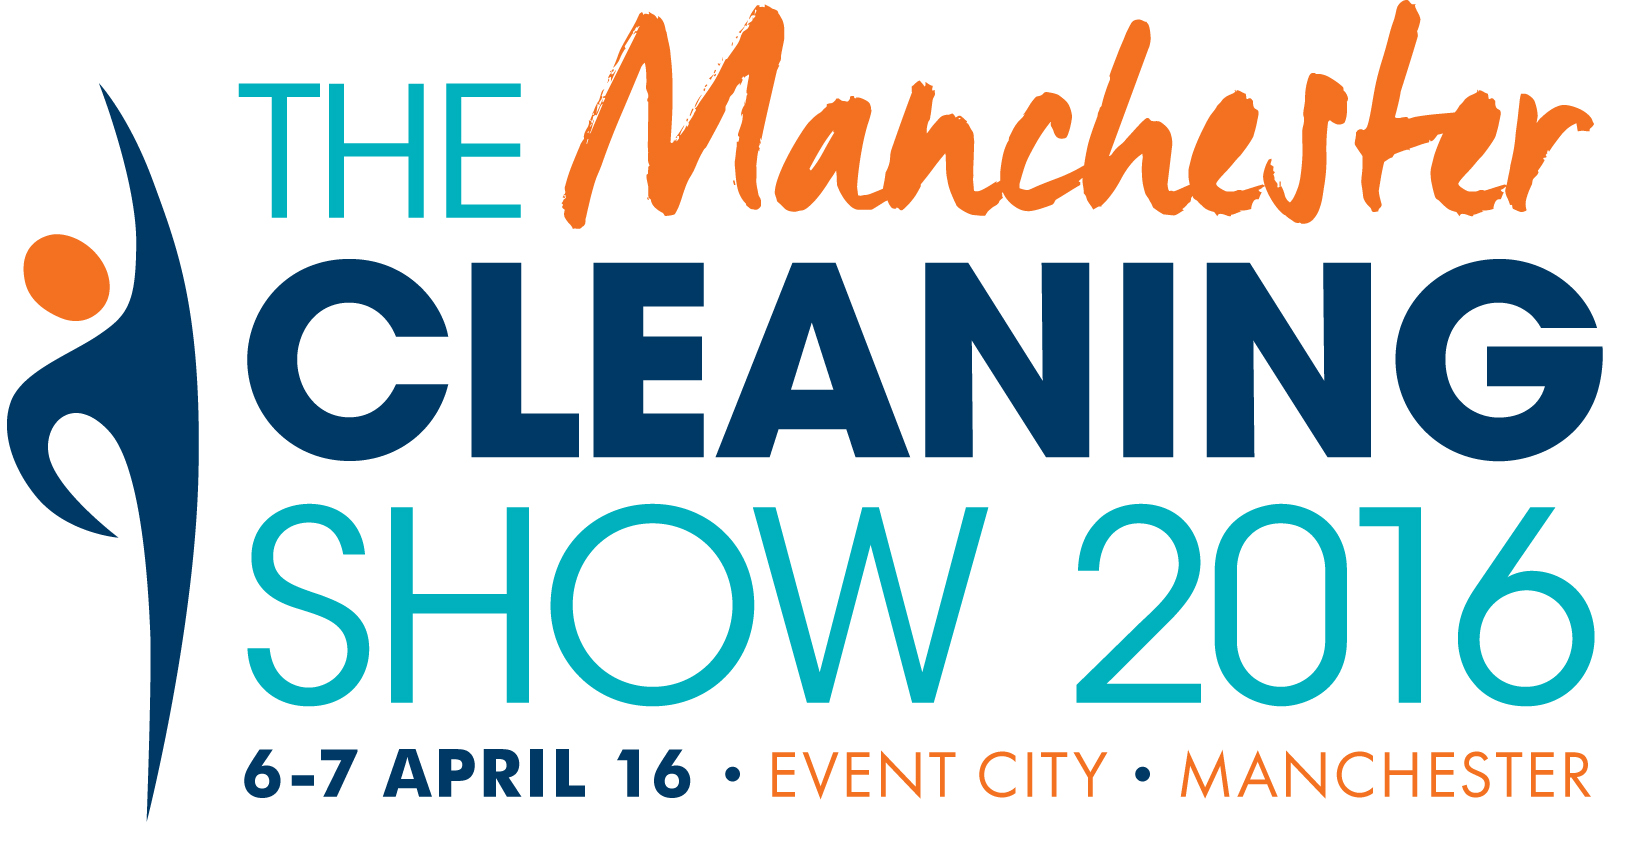 The Manchester Cleaning Show, 6-7 April 2016